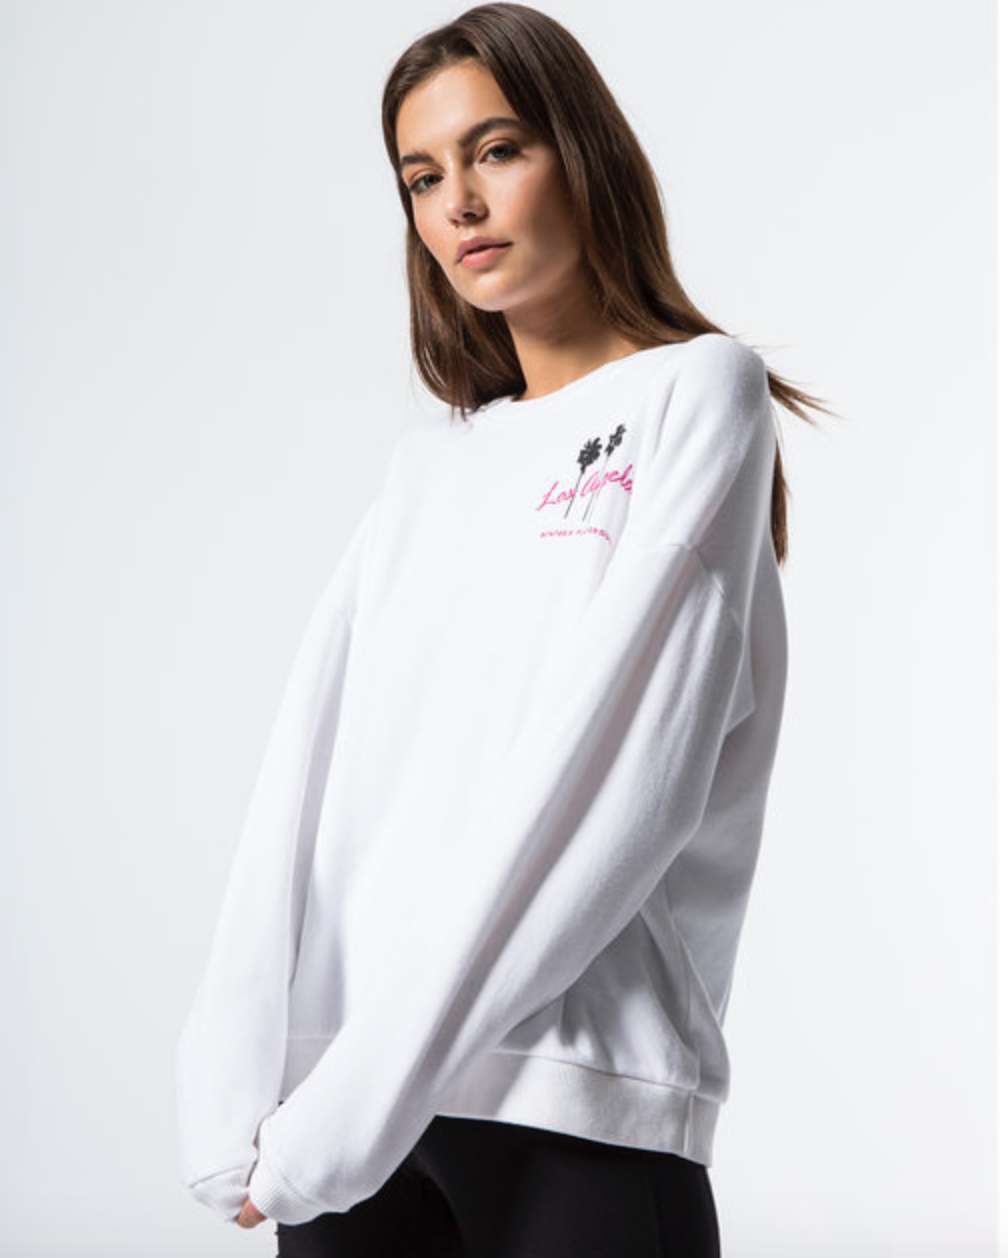 Winter's Playground Sweatshirt in White from LNA, $110  Photo Credit:  Carbon 38